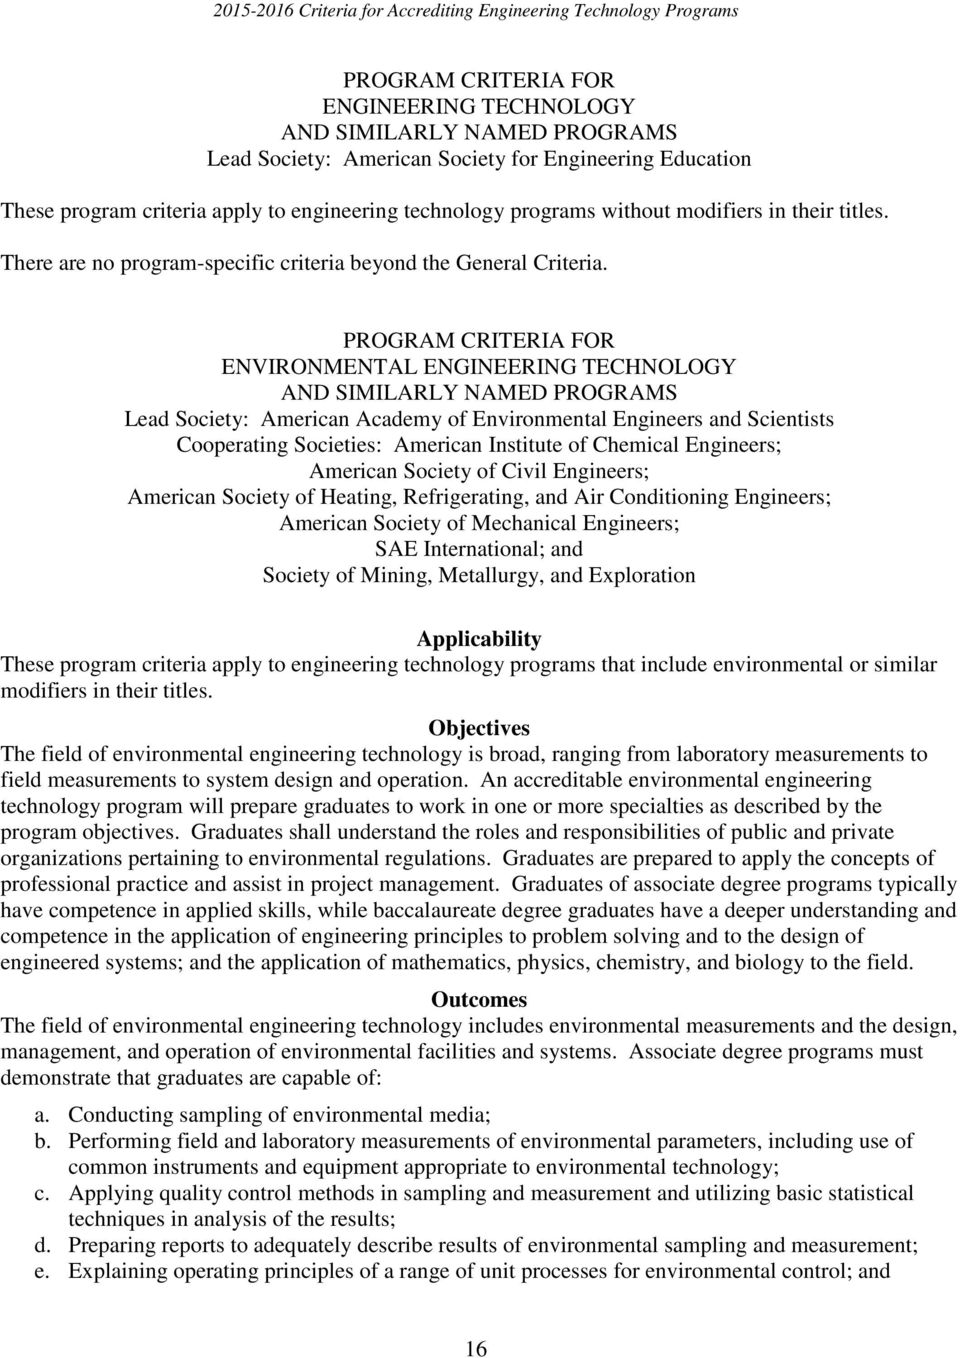 ENVIRONMENTAL ENGINEERING TECHNOLOGY Lead Society: American Academy of Environmental Engineers and Scientists Cooperating Societies: American Institute of Chemical Engineers; American Society of